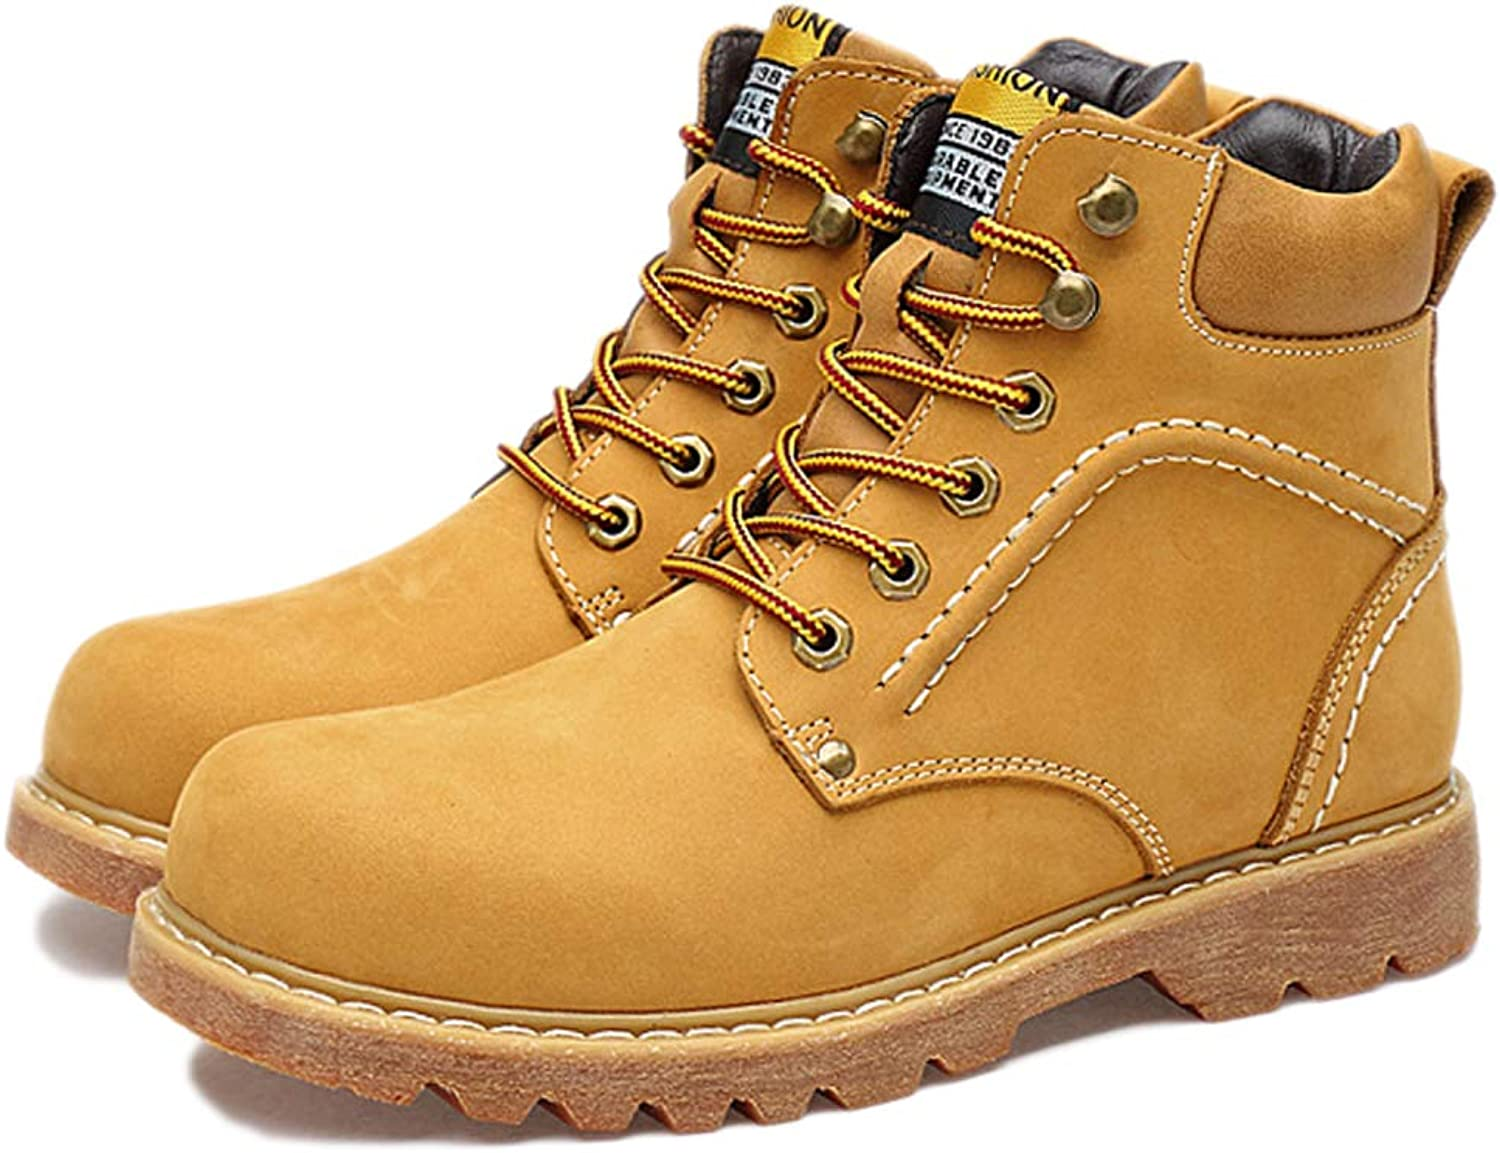 Snfgoij Safety shoes Men Trainers Waterproof Anti-Slip Outdoor Leather High-top Plus Velvet Martin Boots Desert Boots Snow Boots,Yellow-37